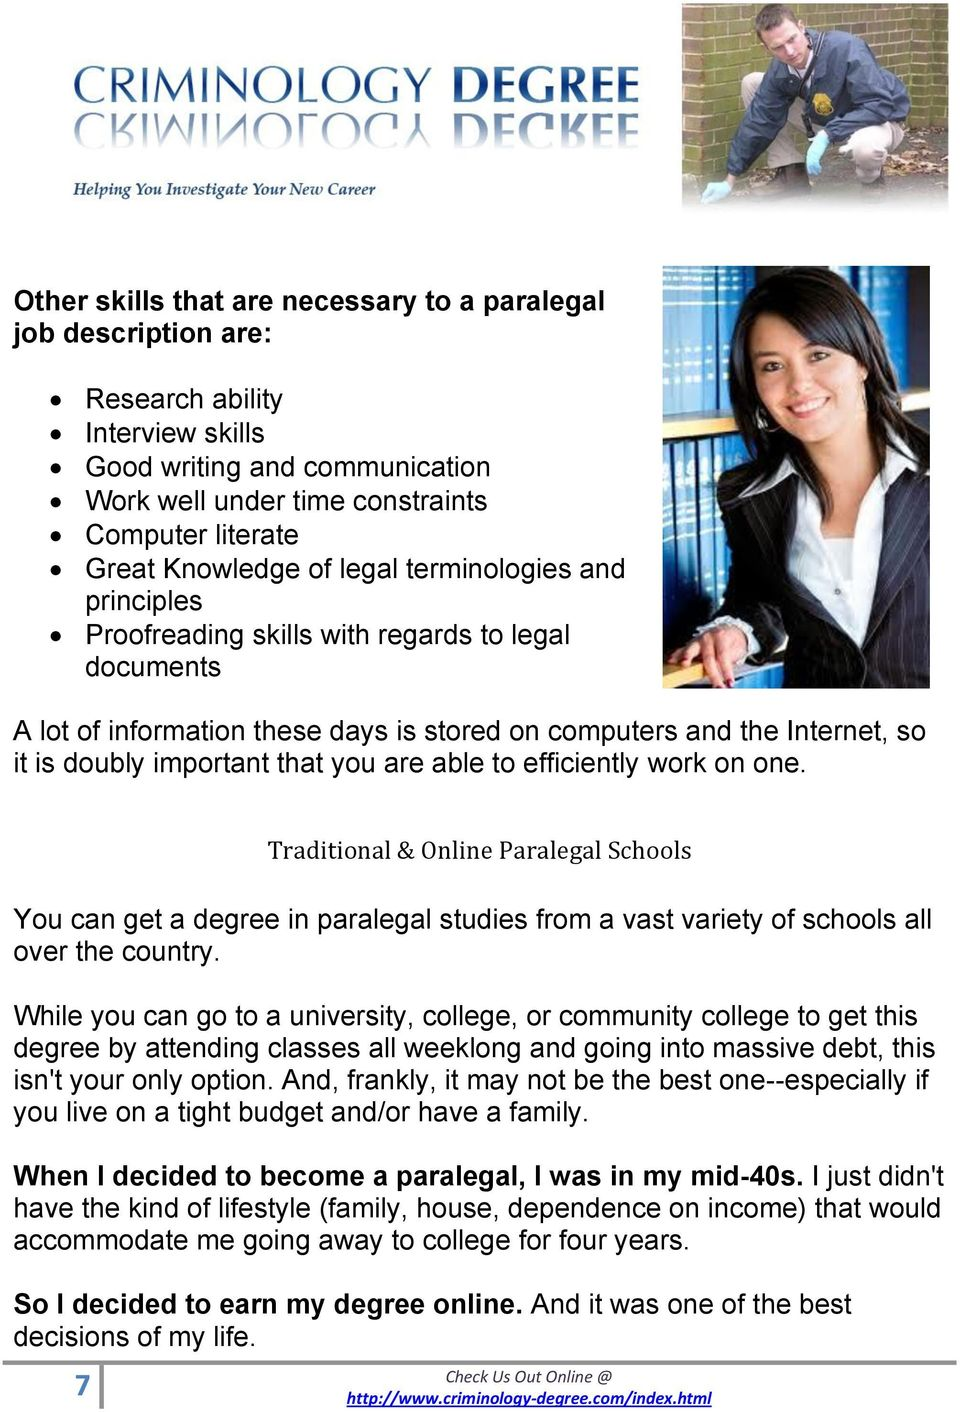 are able to efficiently work on one. 7 Traditional & Online Paralegal Schools You can get a degree in paralegal studies from a vast variety of schools all over the country.